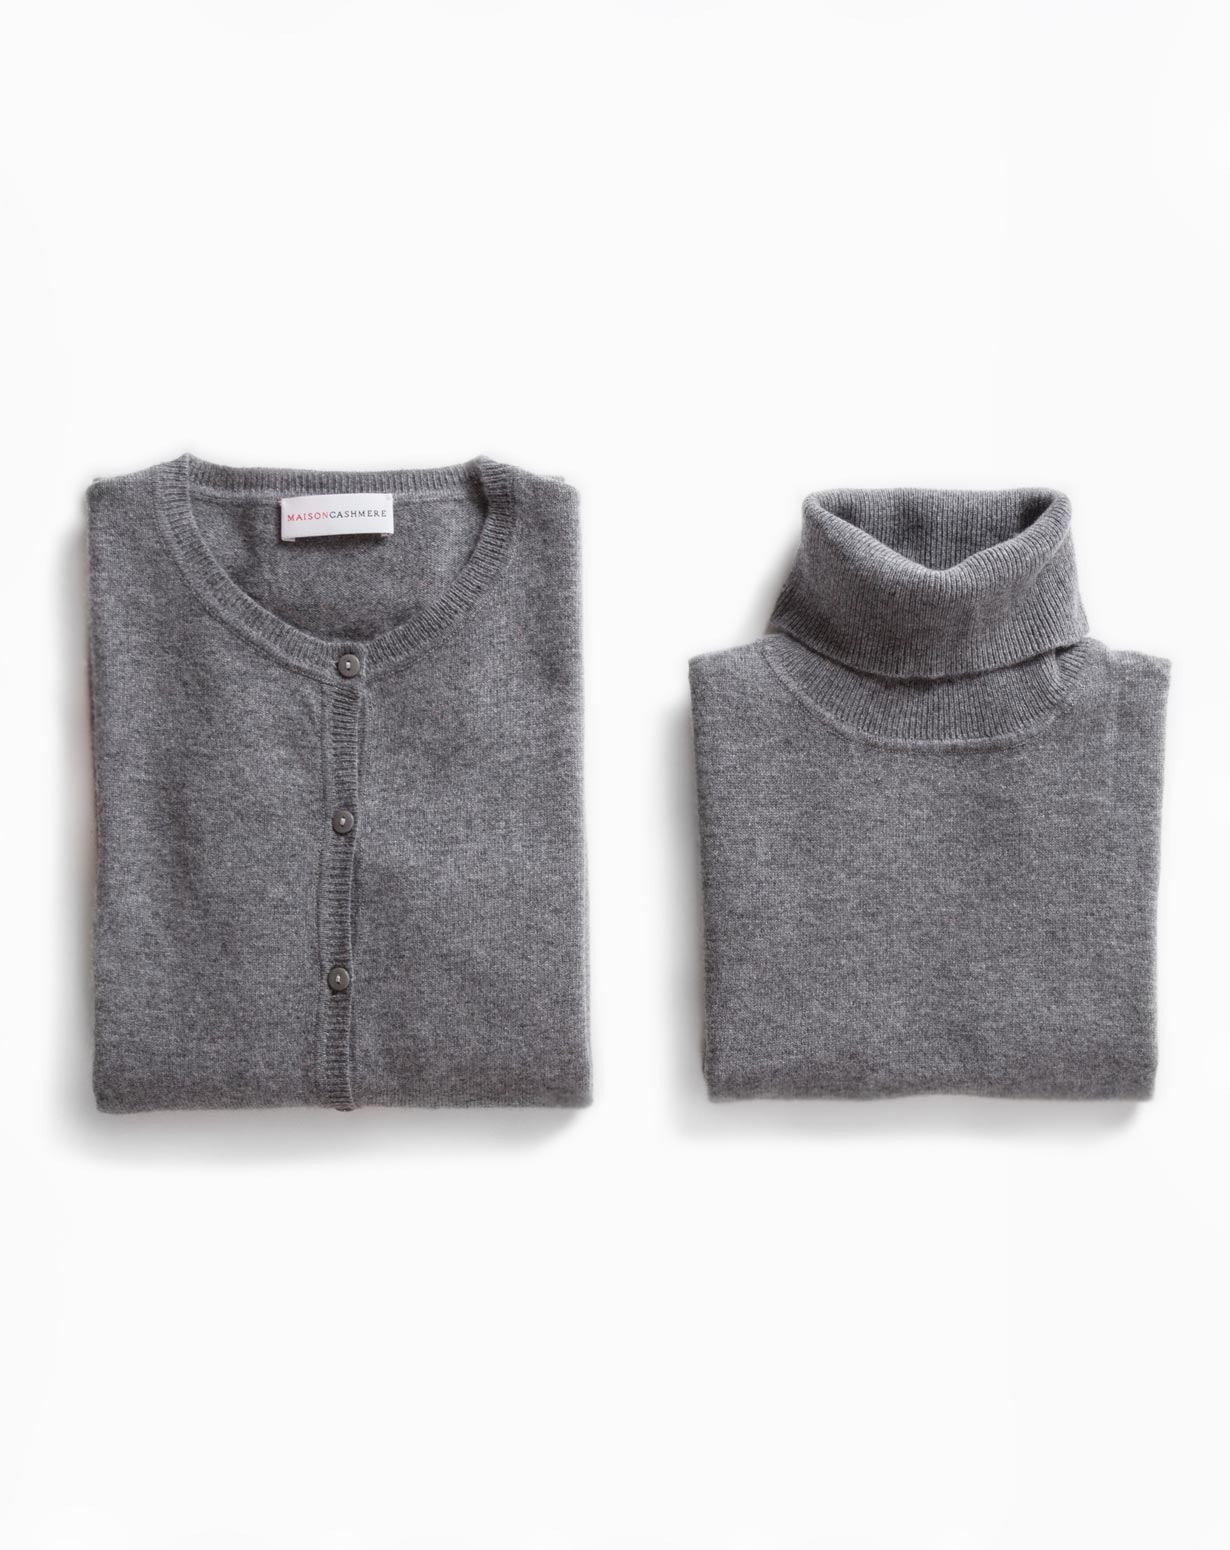 Ladies' Dark Grey Twinset - Cardigan & Sleeveless Polo Neck